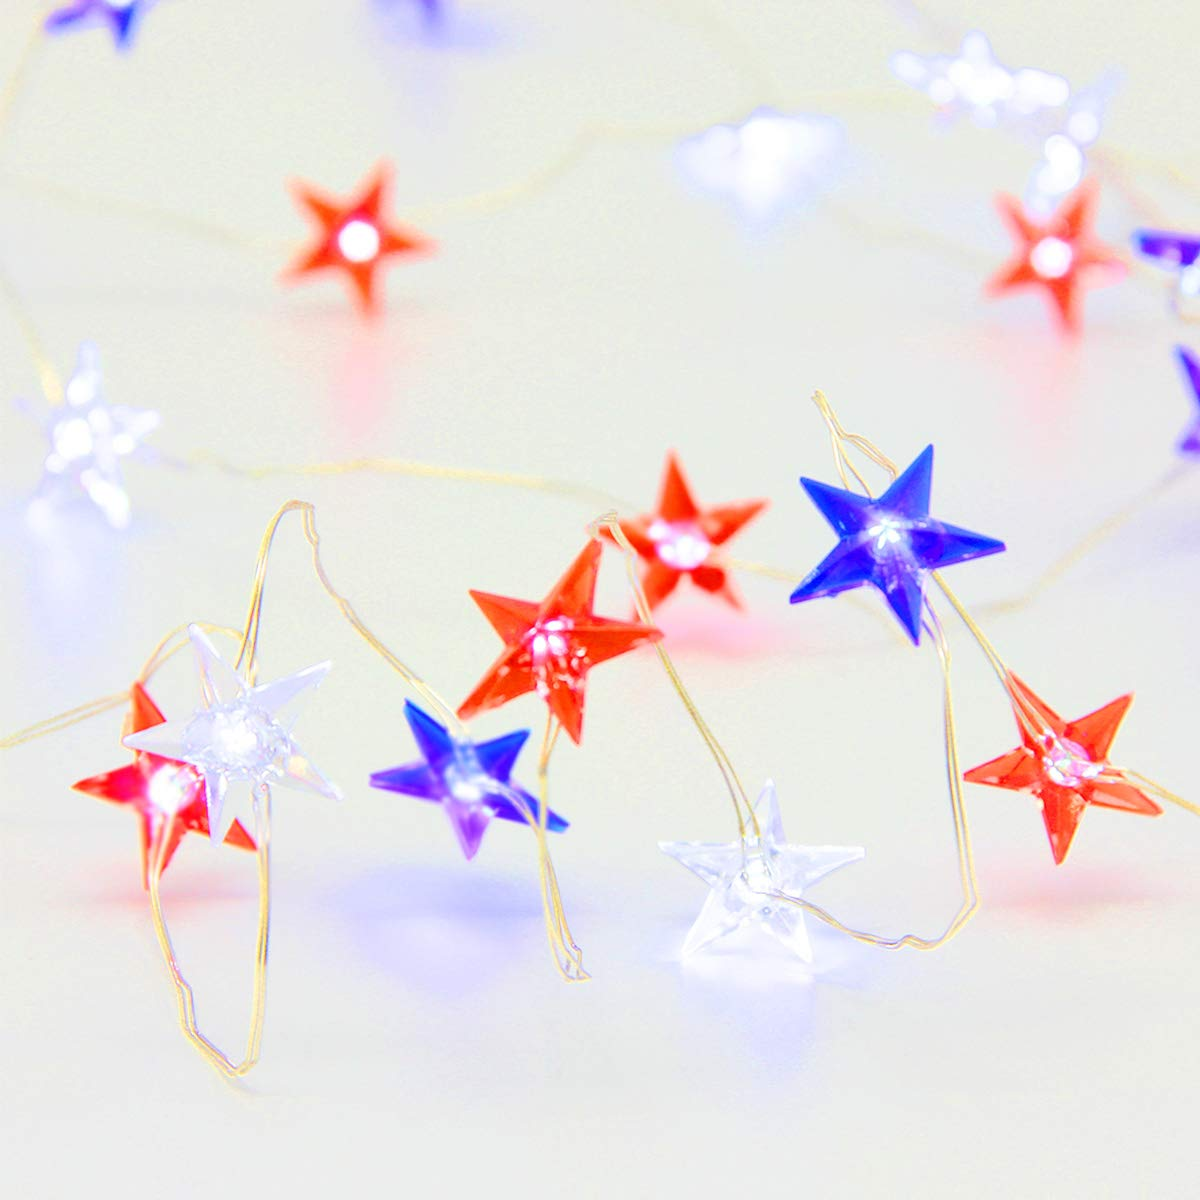 Independence Day Decor LED Light, USA American Stars Flag Lighting for July 4th, Red White Blue String Lights Battery 10ft 40 LEDs with Remote, Patriotic Decoration for Memorial Day, Festival, Party